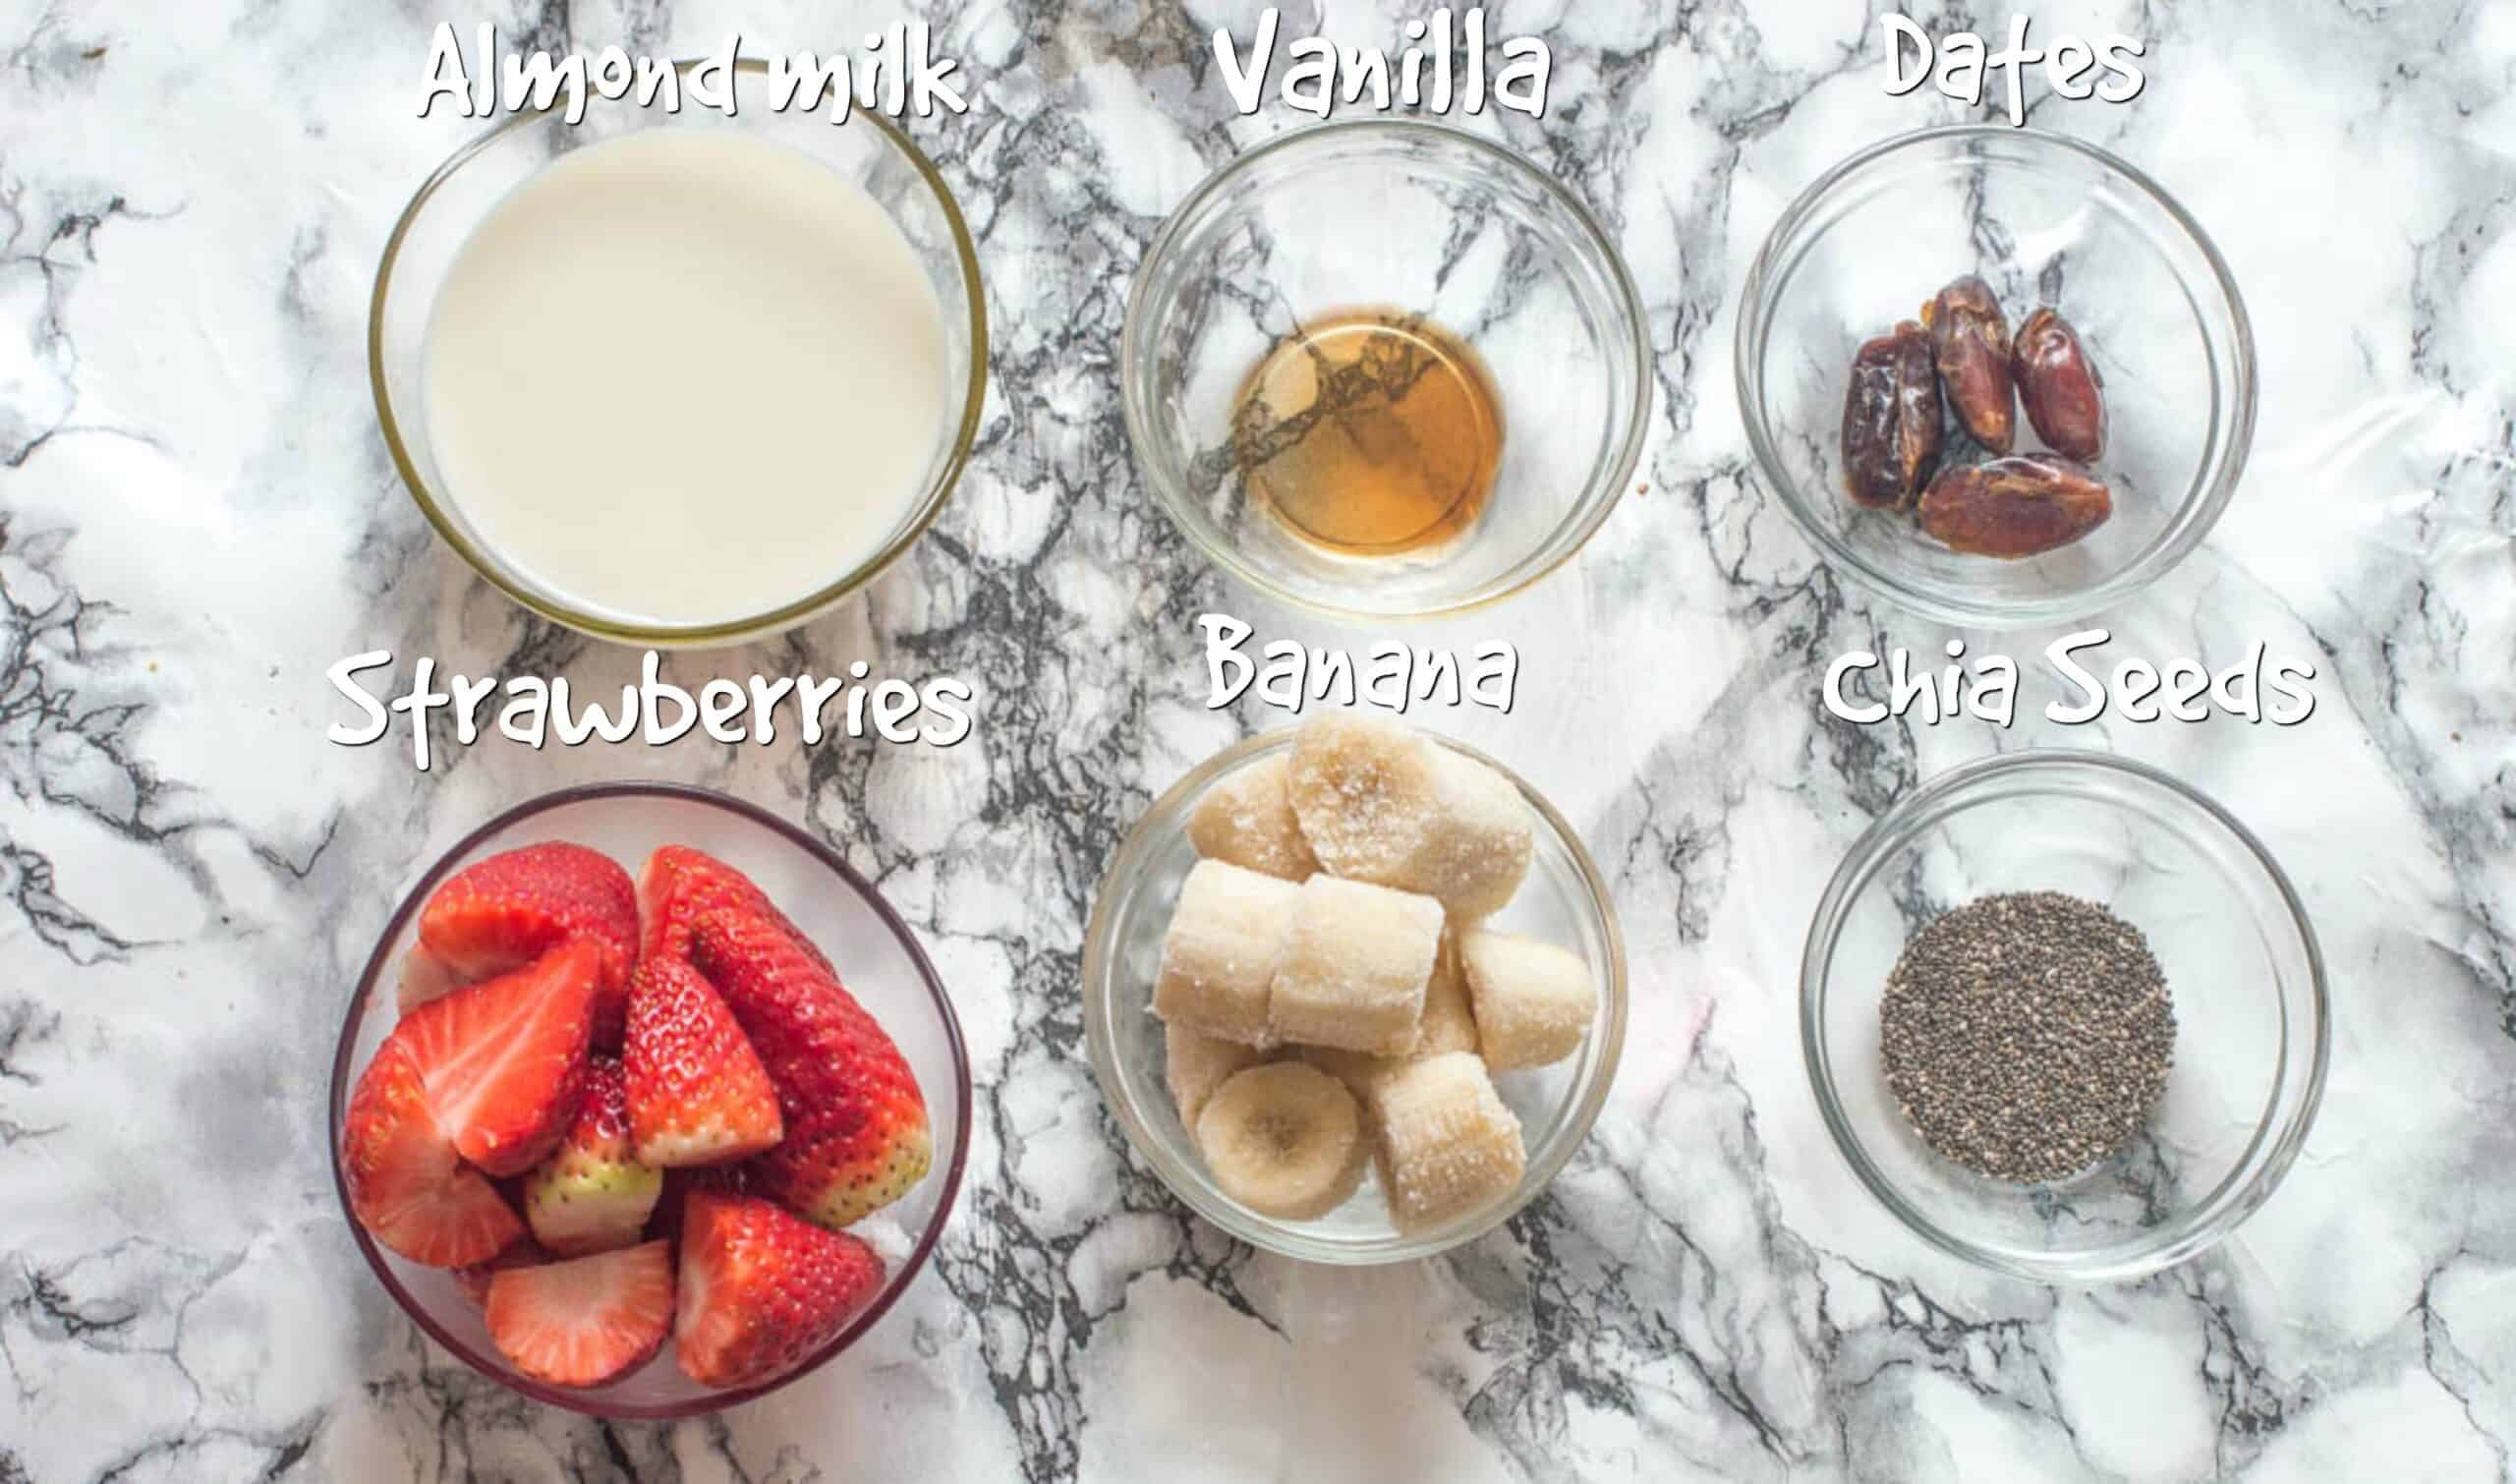 Ingredients for strawberry and banana smoothie